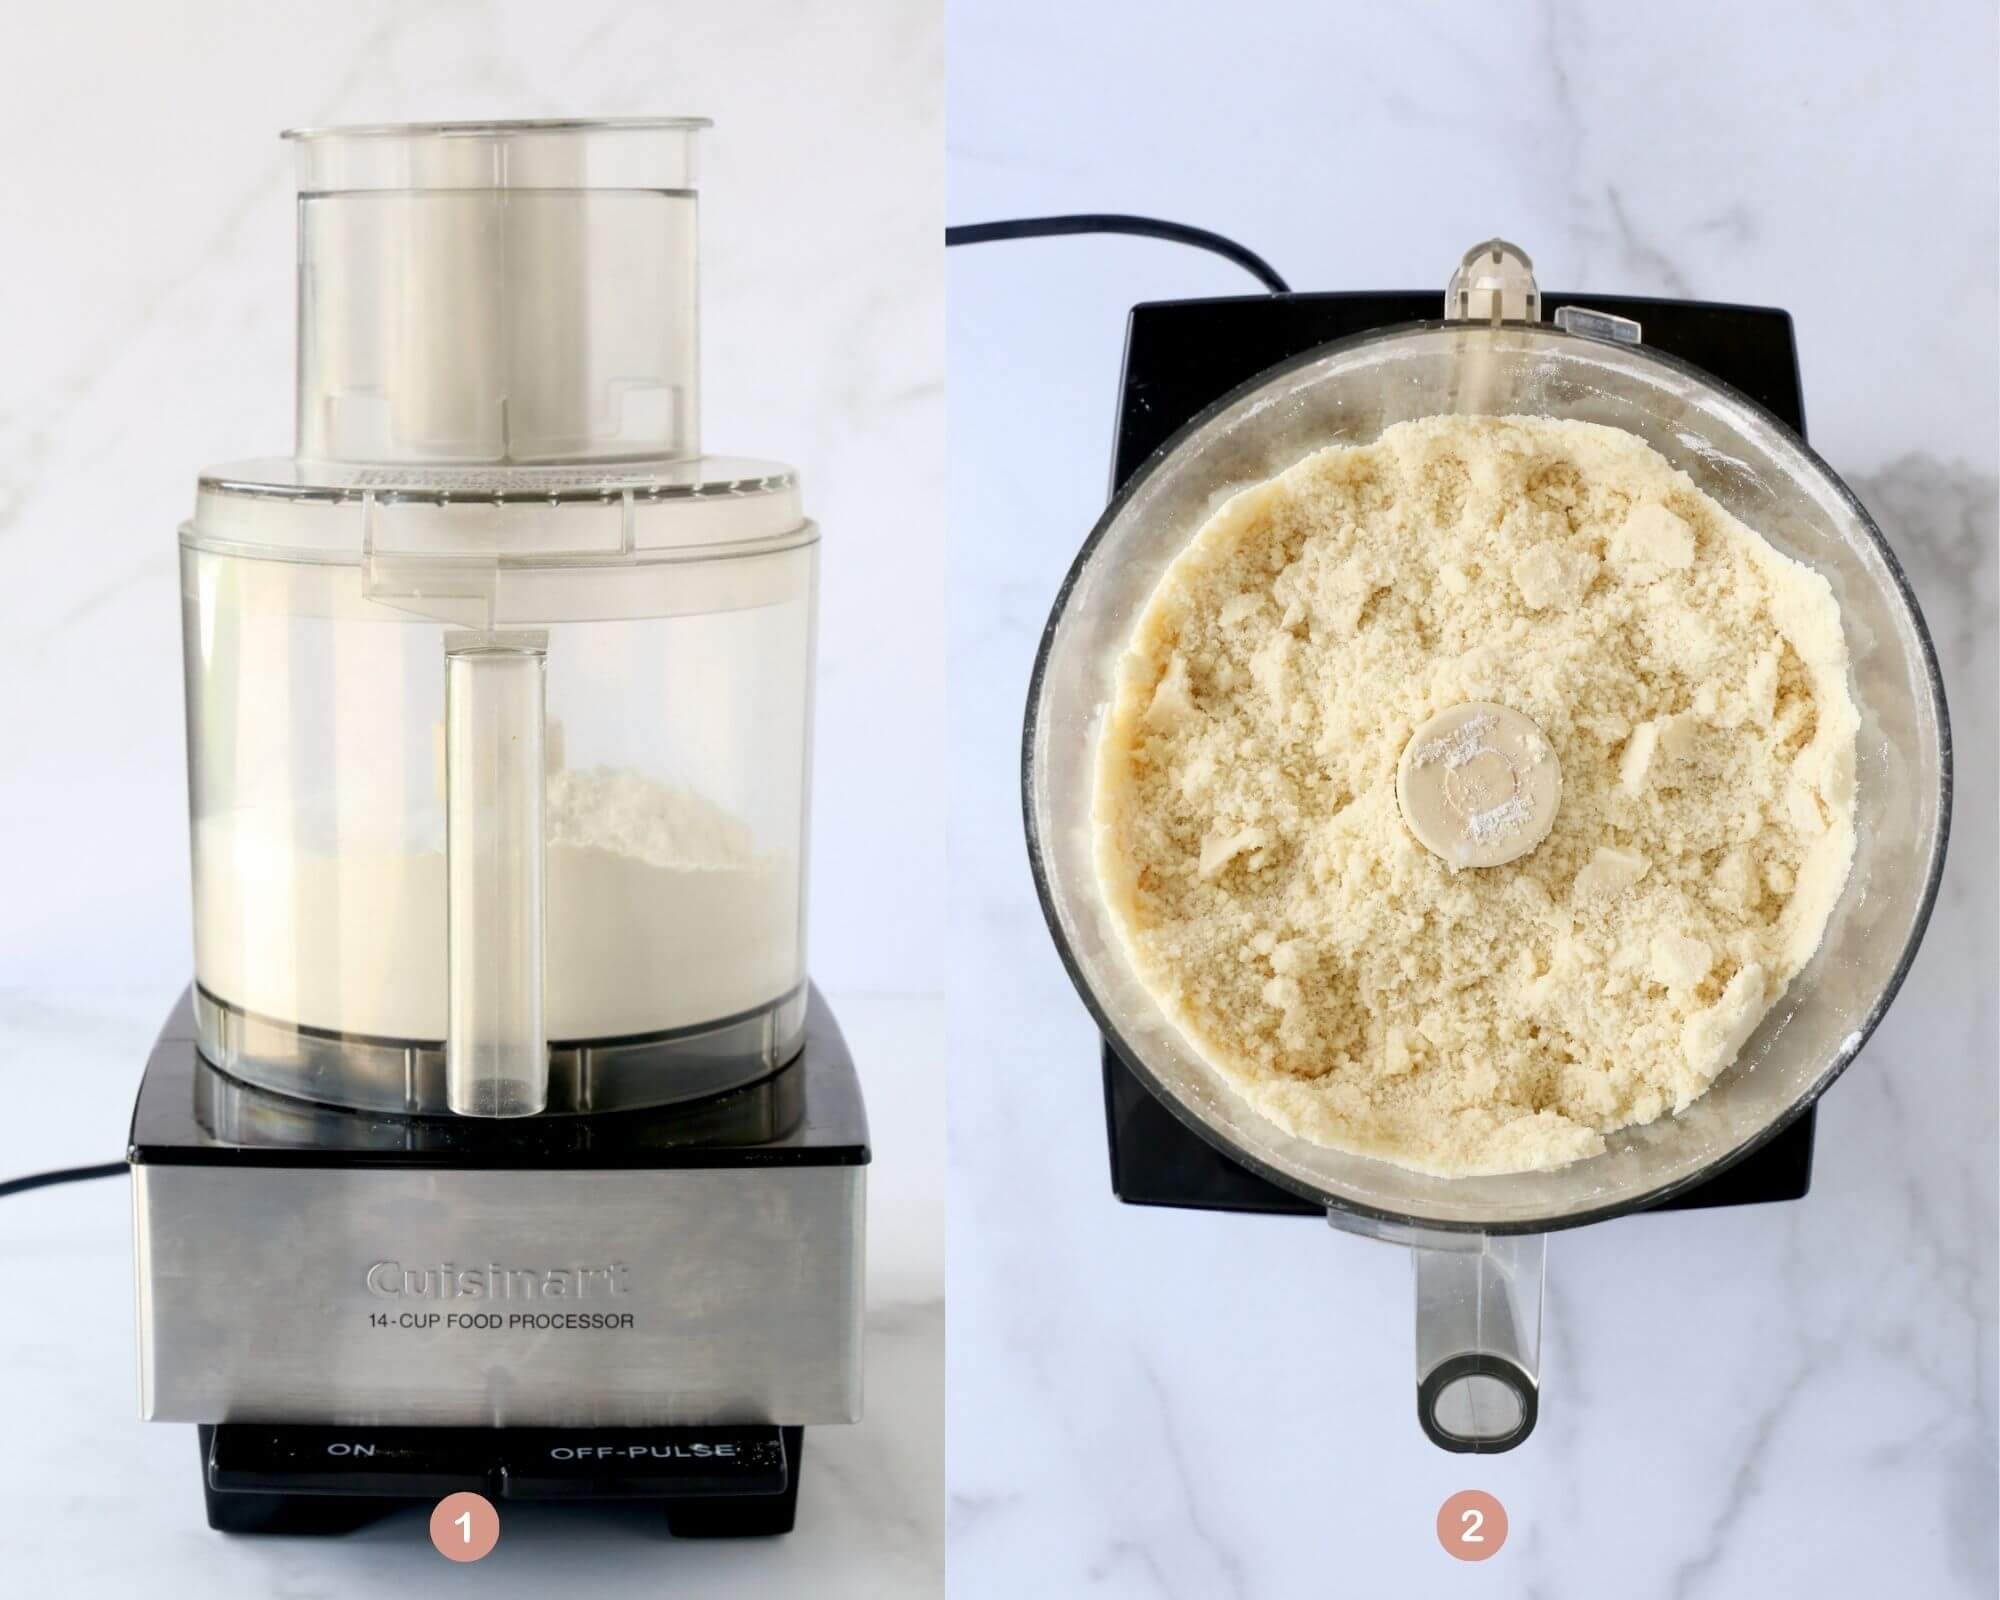 a food processor with flour, sugar and salt next to a food processor that butter has been added.